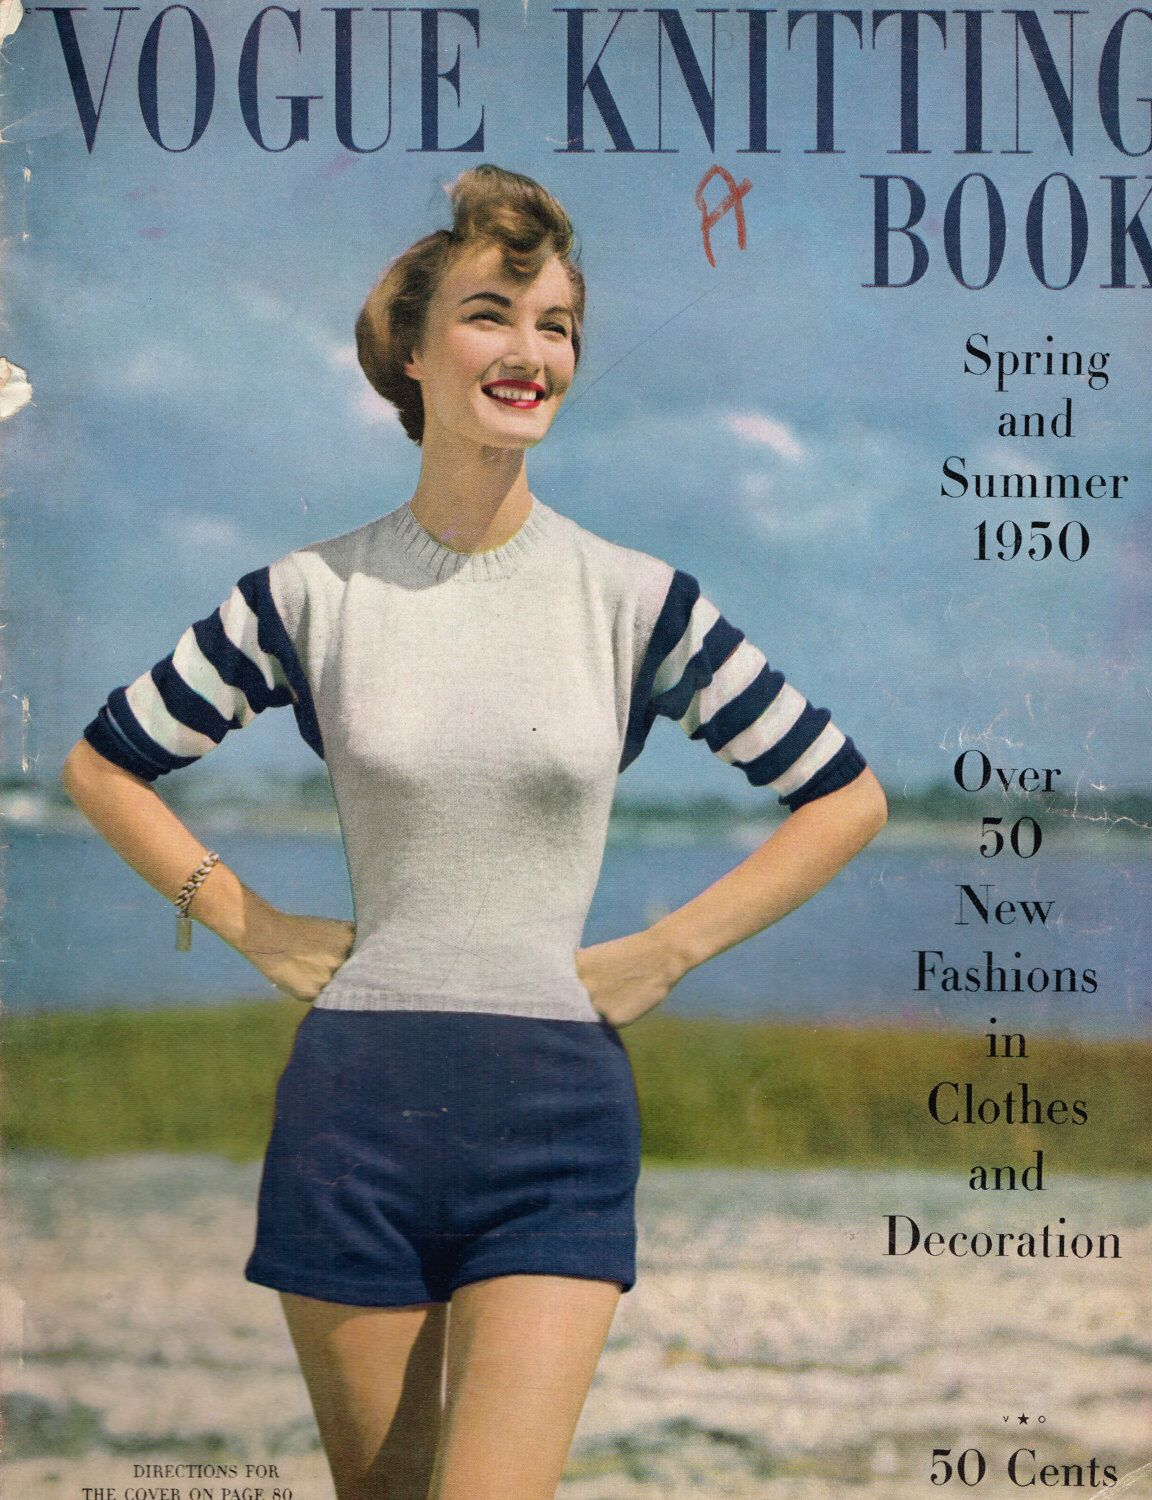 Vogue knitting book spring and summer 1950 gorgeous vintage vogue knitting book spring and summer 1950 gorgeous vintage knitting patterns childrens knits bankloansurffo Choice Image